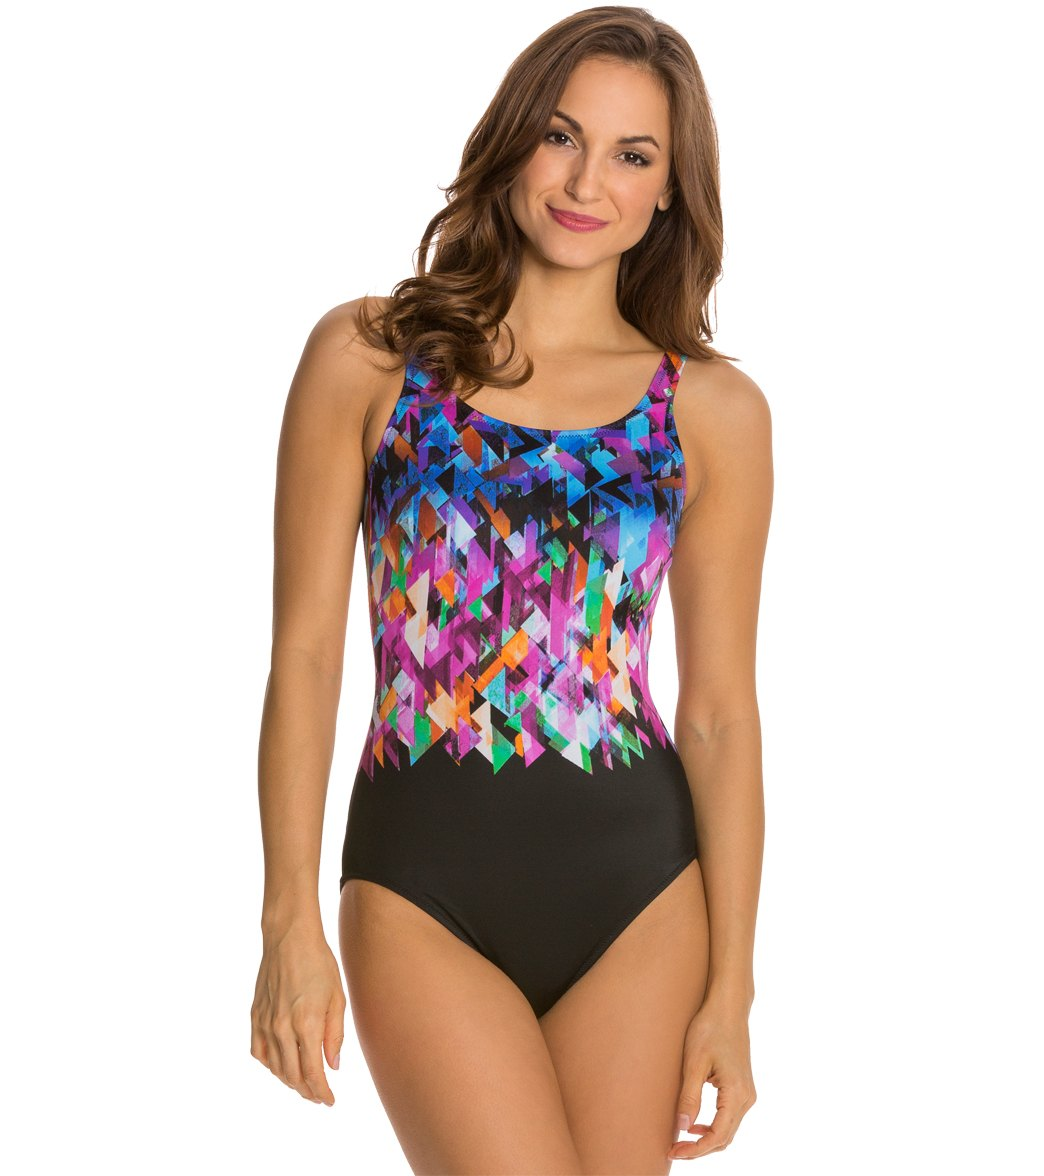 3e17b858c8b6d Gottex Fire & Ice Mastectomy One Piece Swimsuit at SwimOutlet.com ...